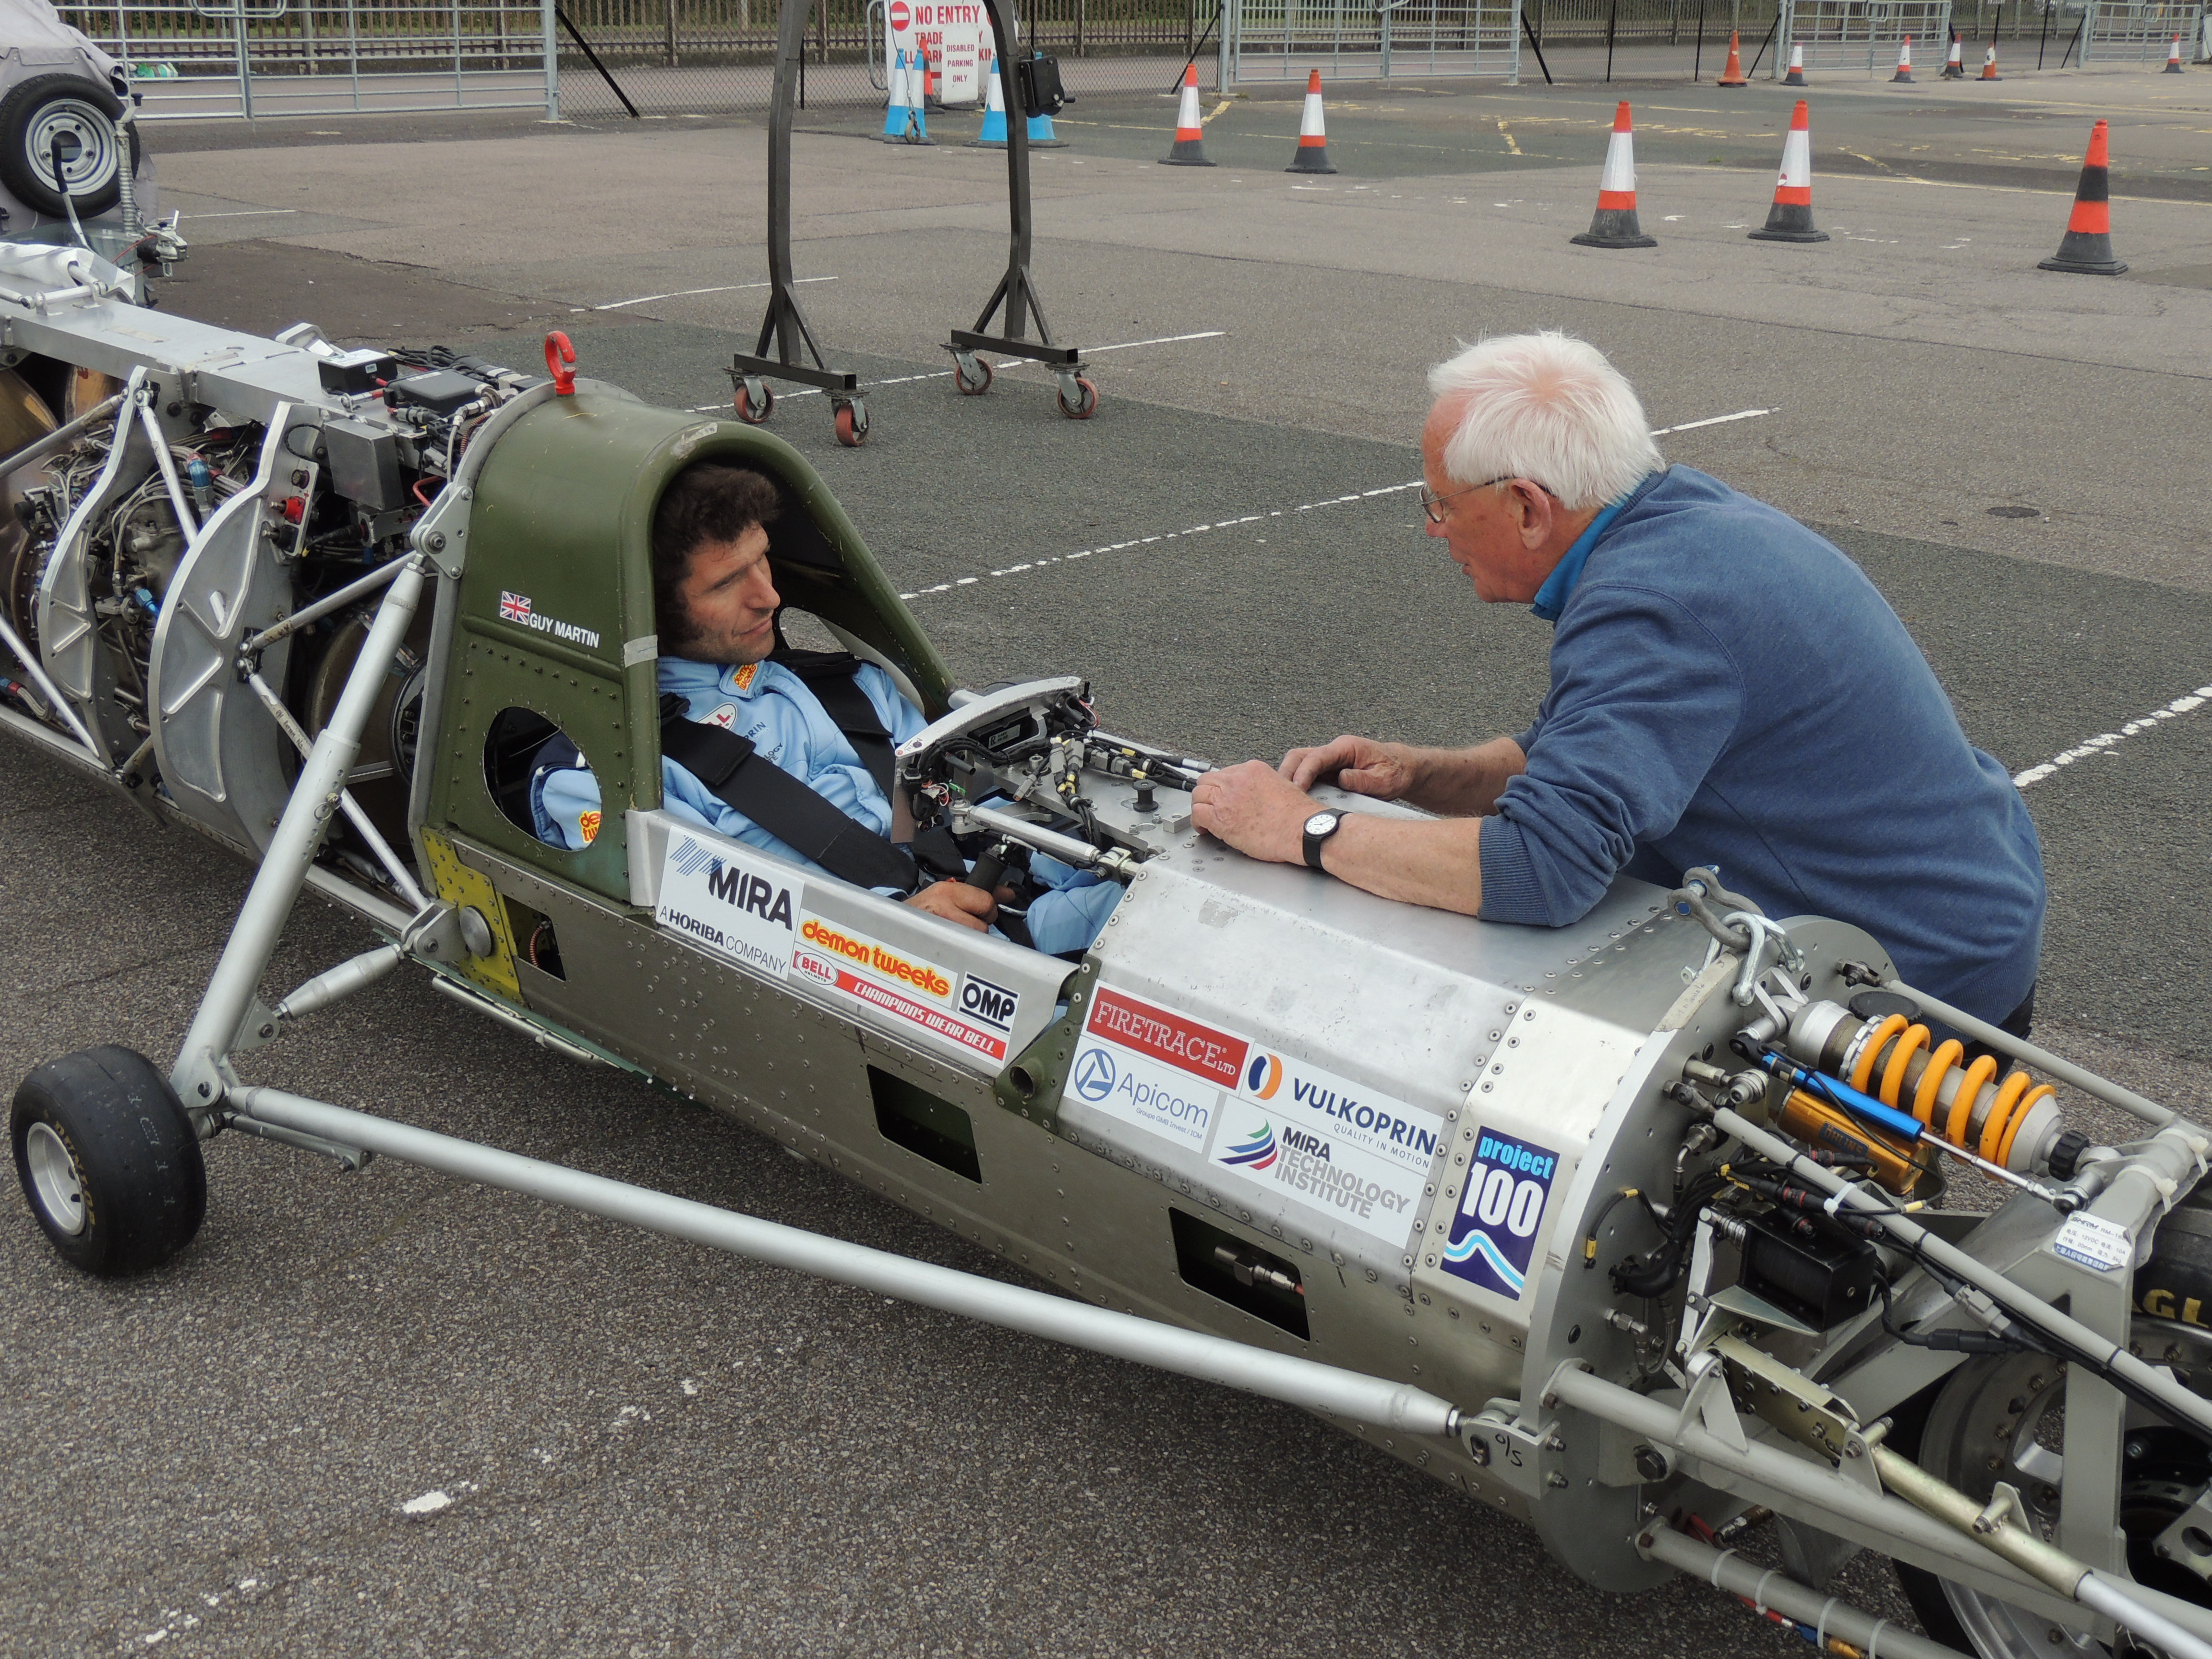 GUY MARTIN'S LAND SPEED RECORD ATTEMPT GAINS TRACTION IN TESTS